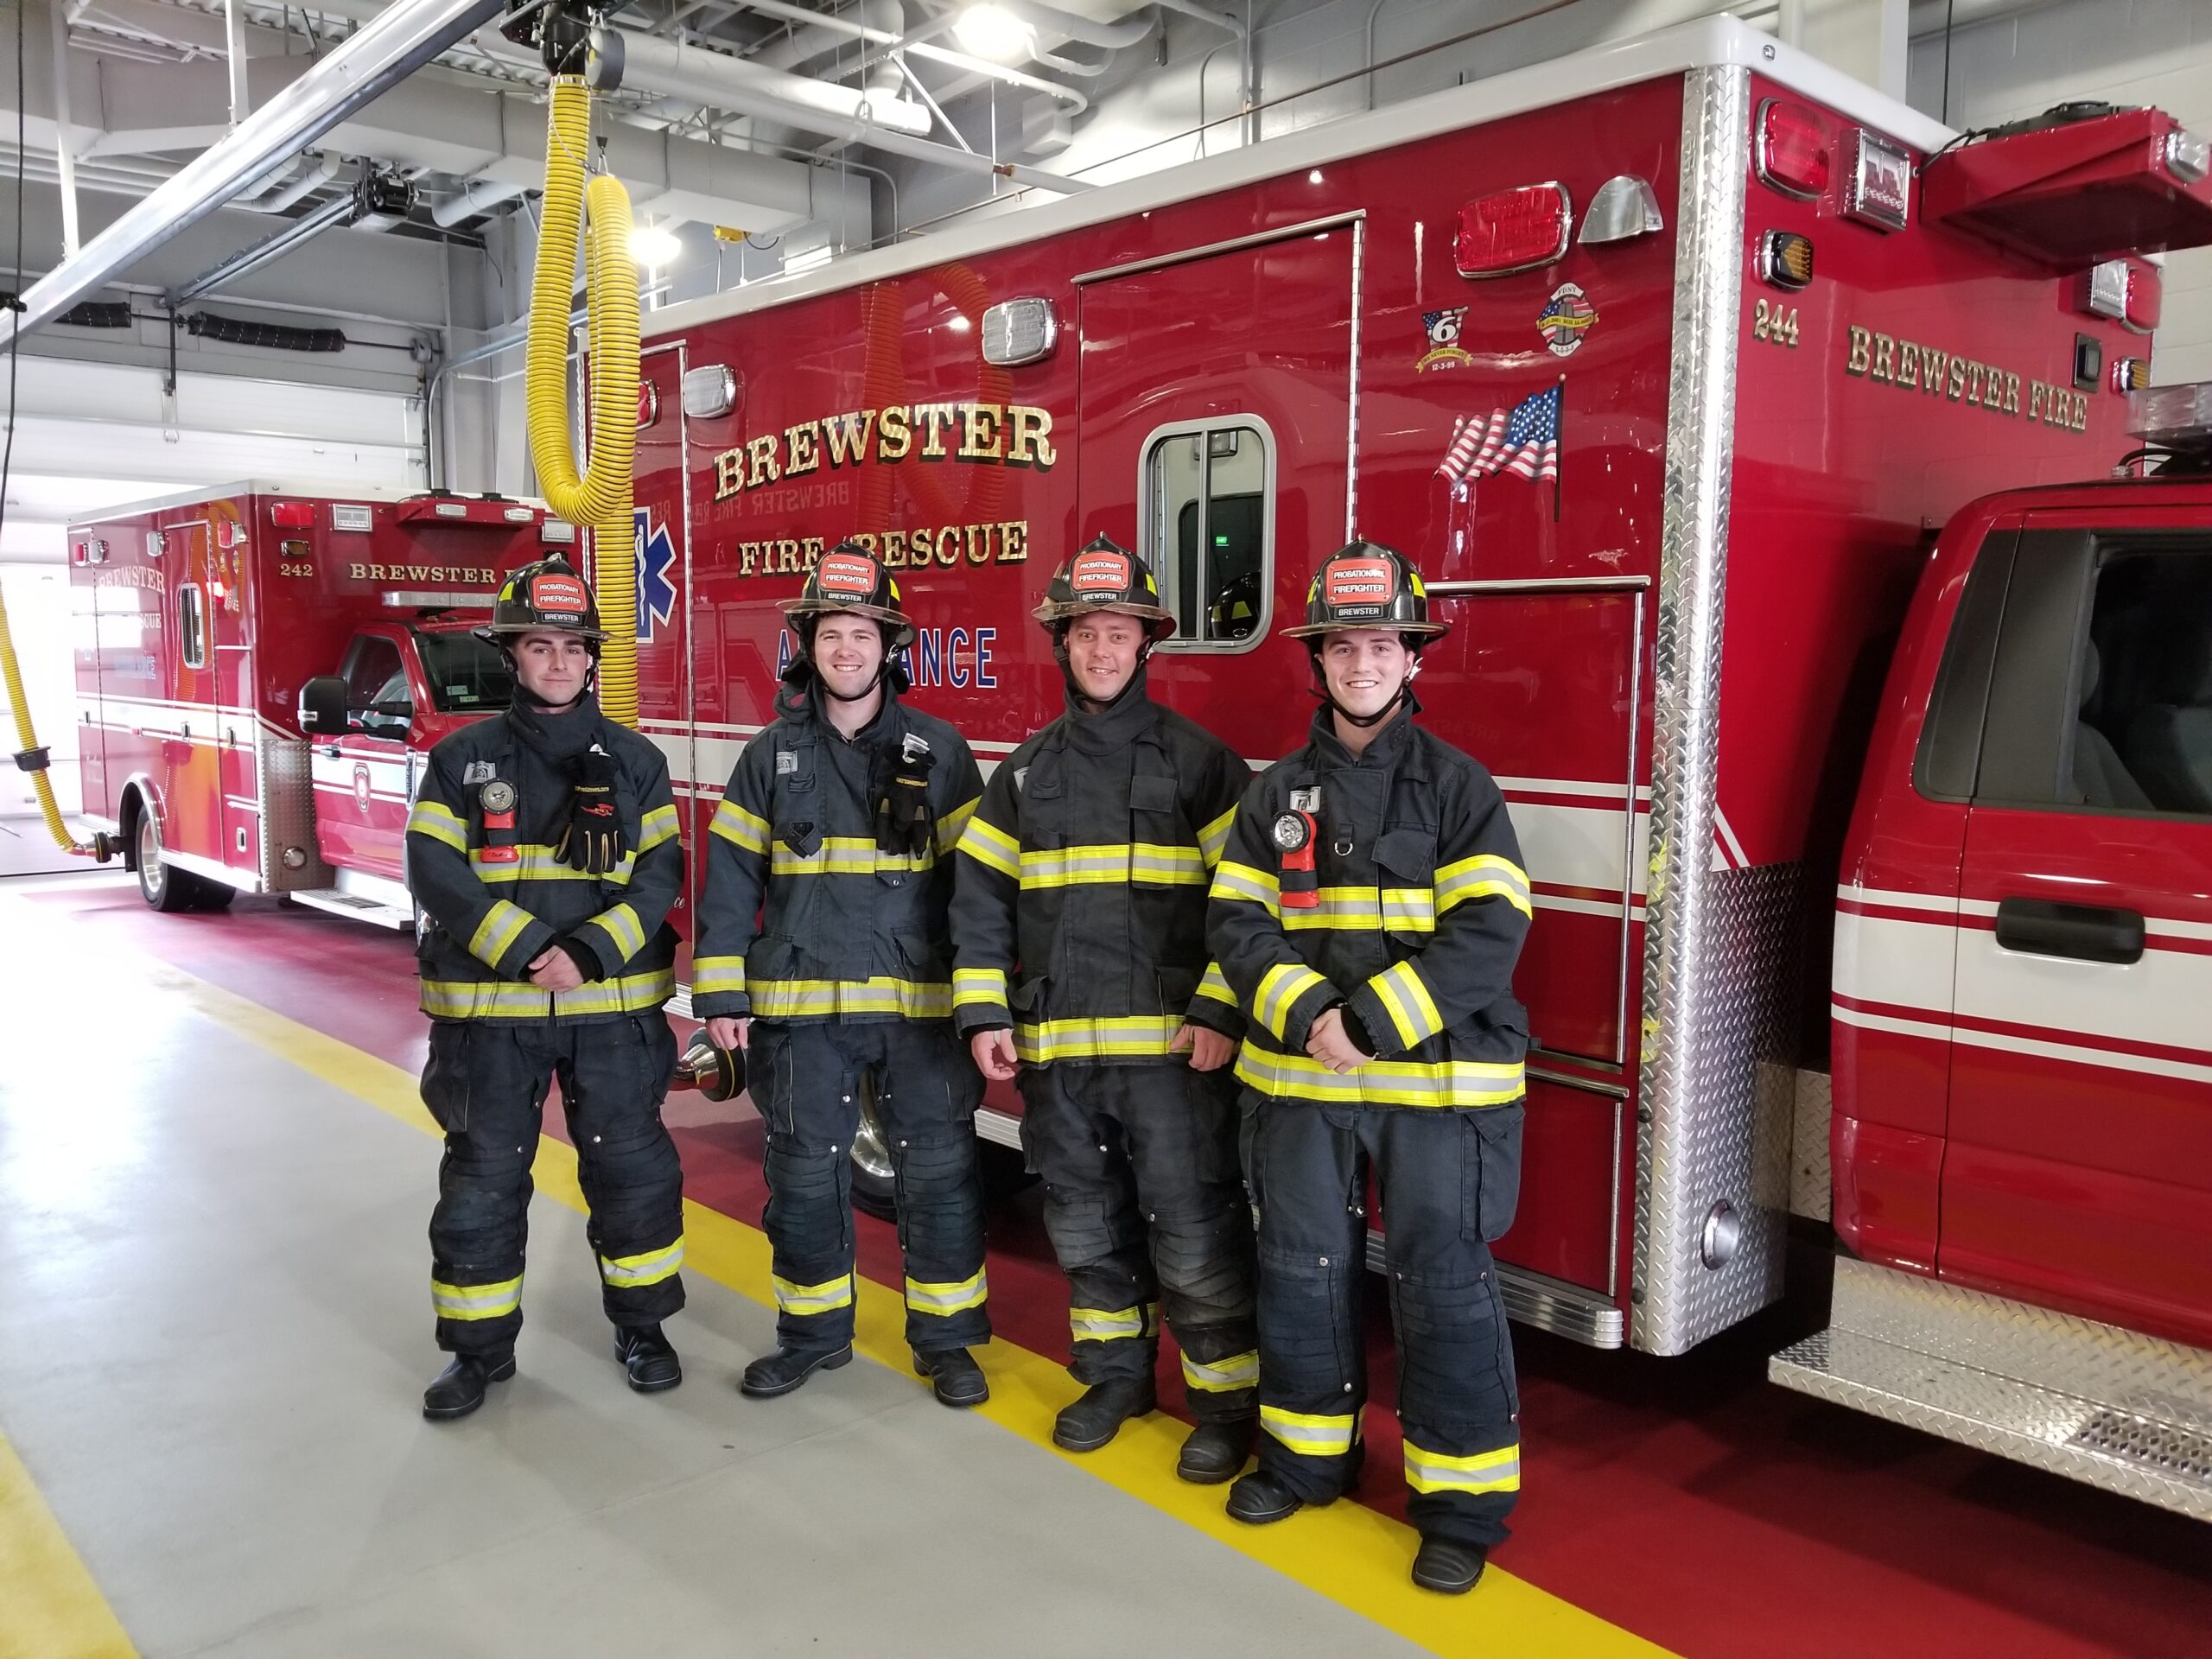 Brewster Fire Rescue Appoints New Firefighters Brewster